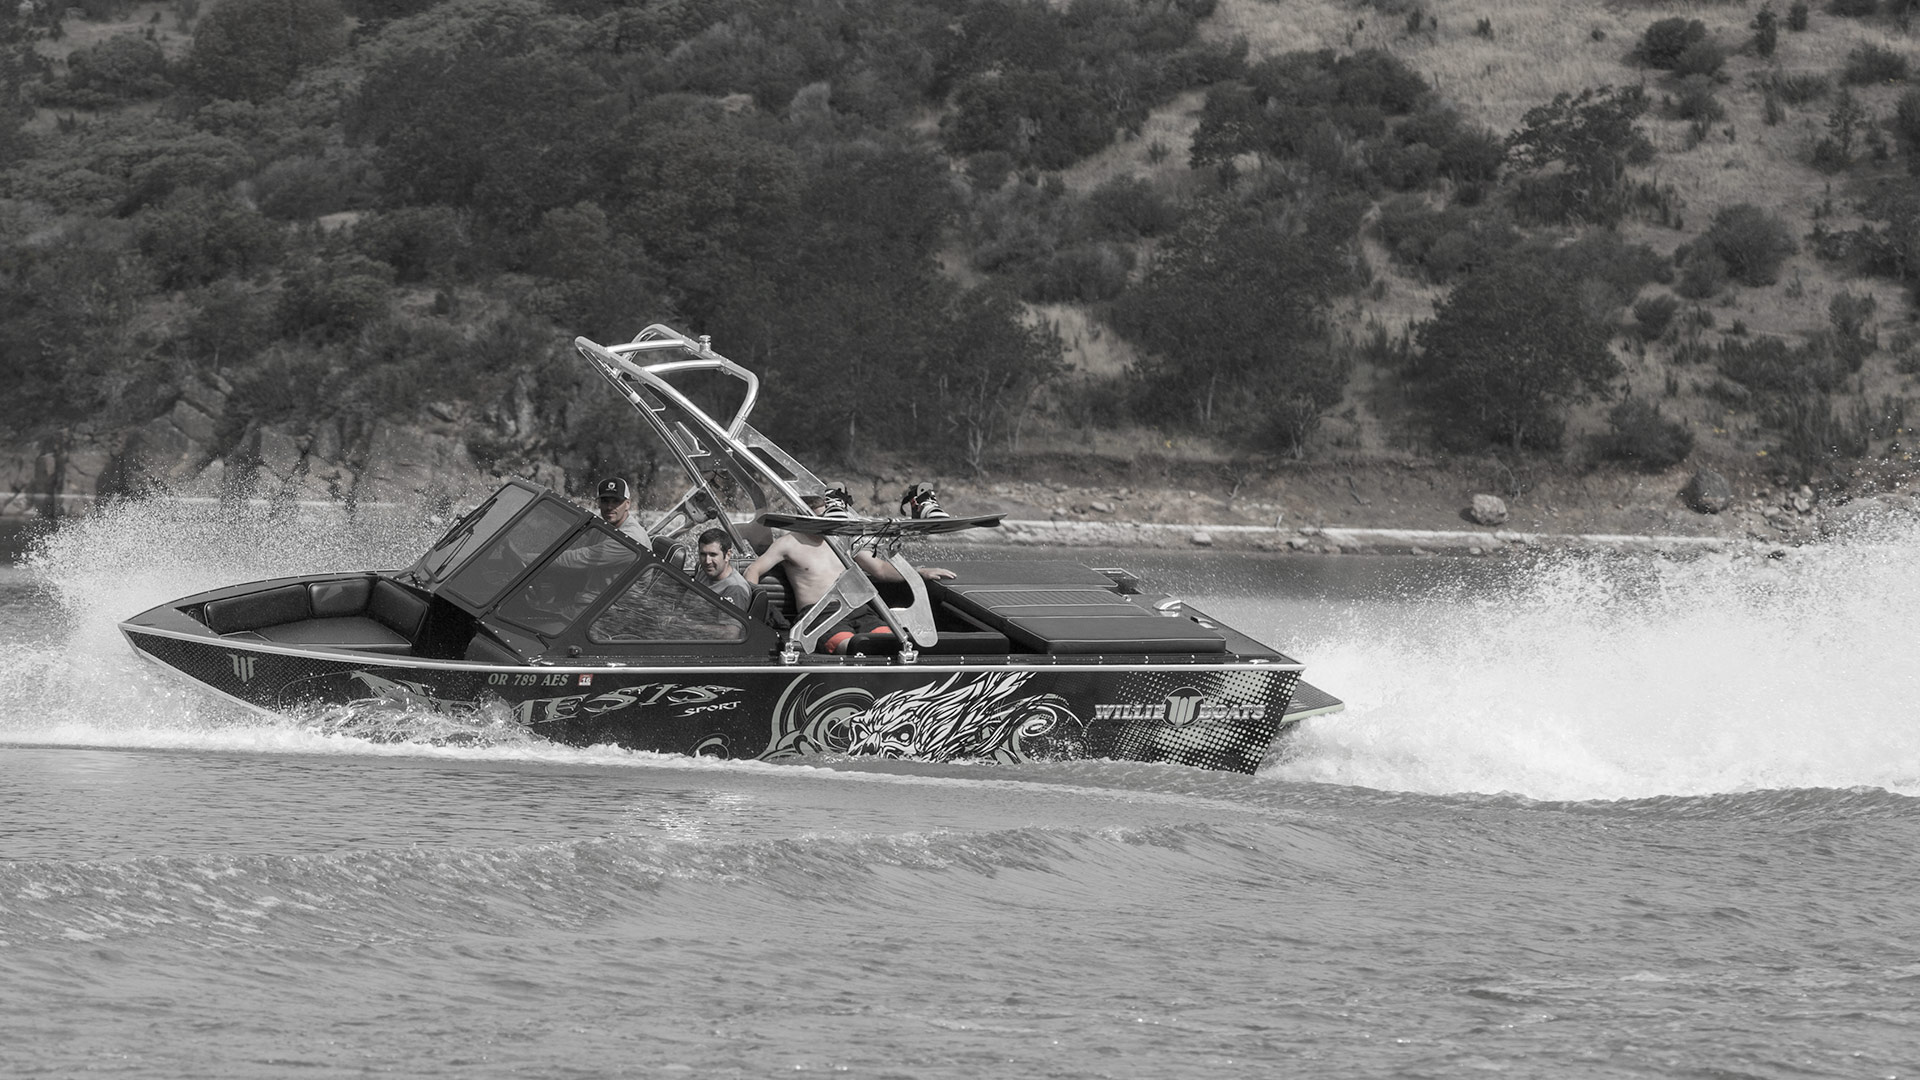 Willie Boats For Sale >> Nemesis - Willie Boats